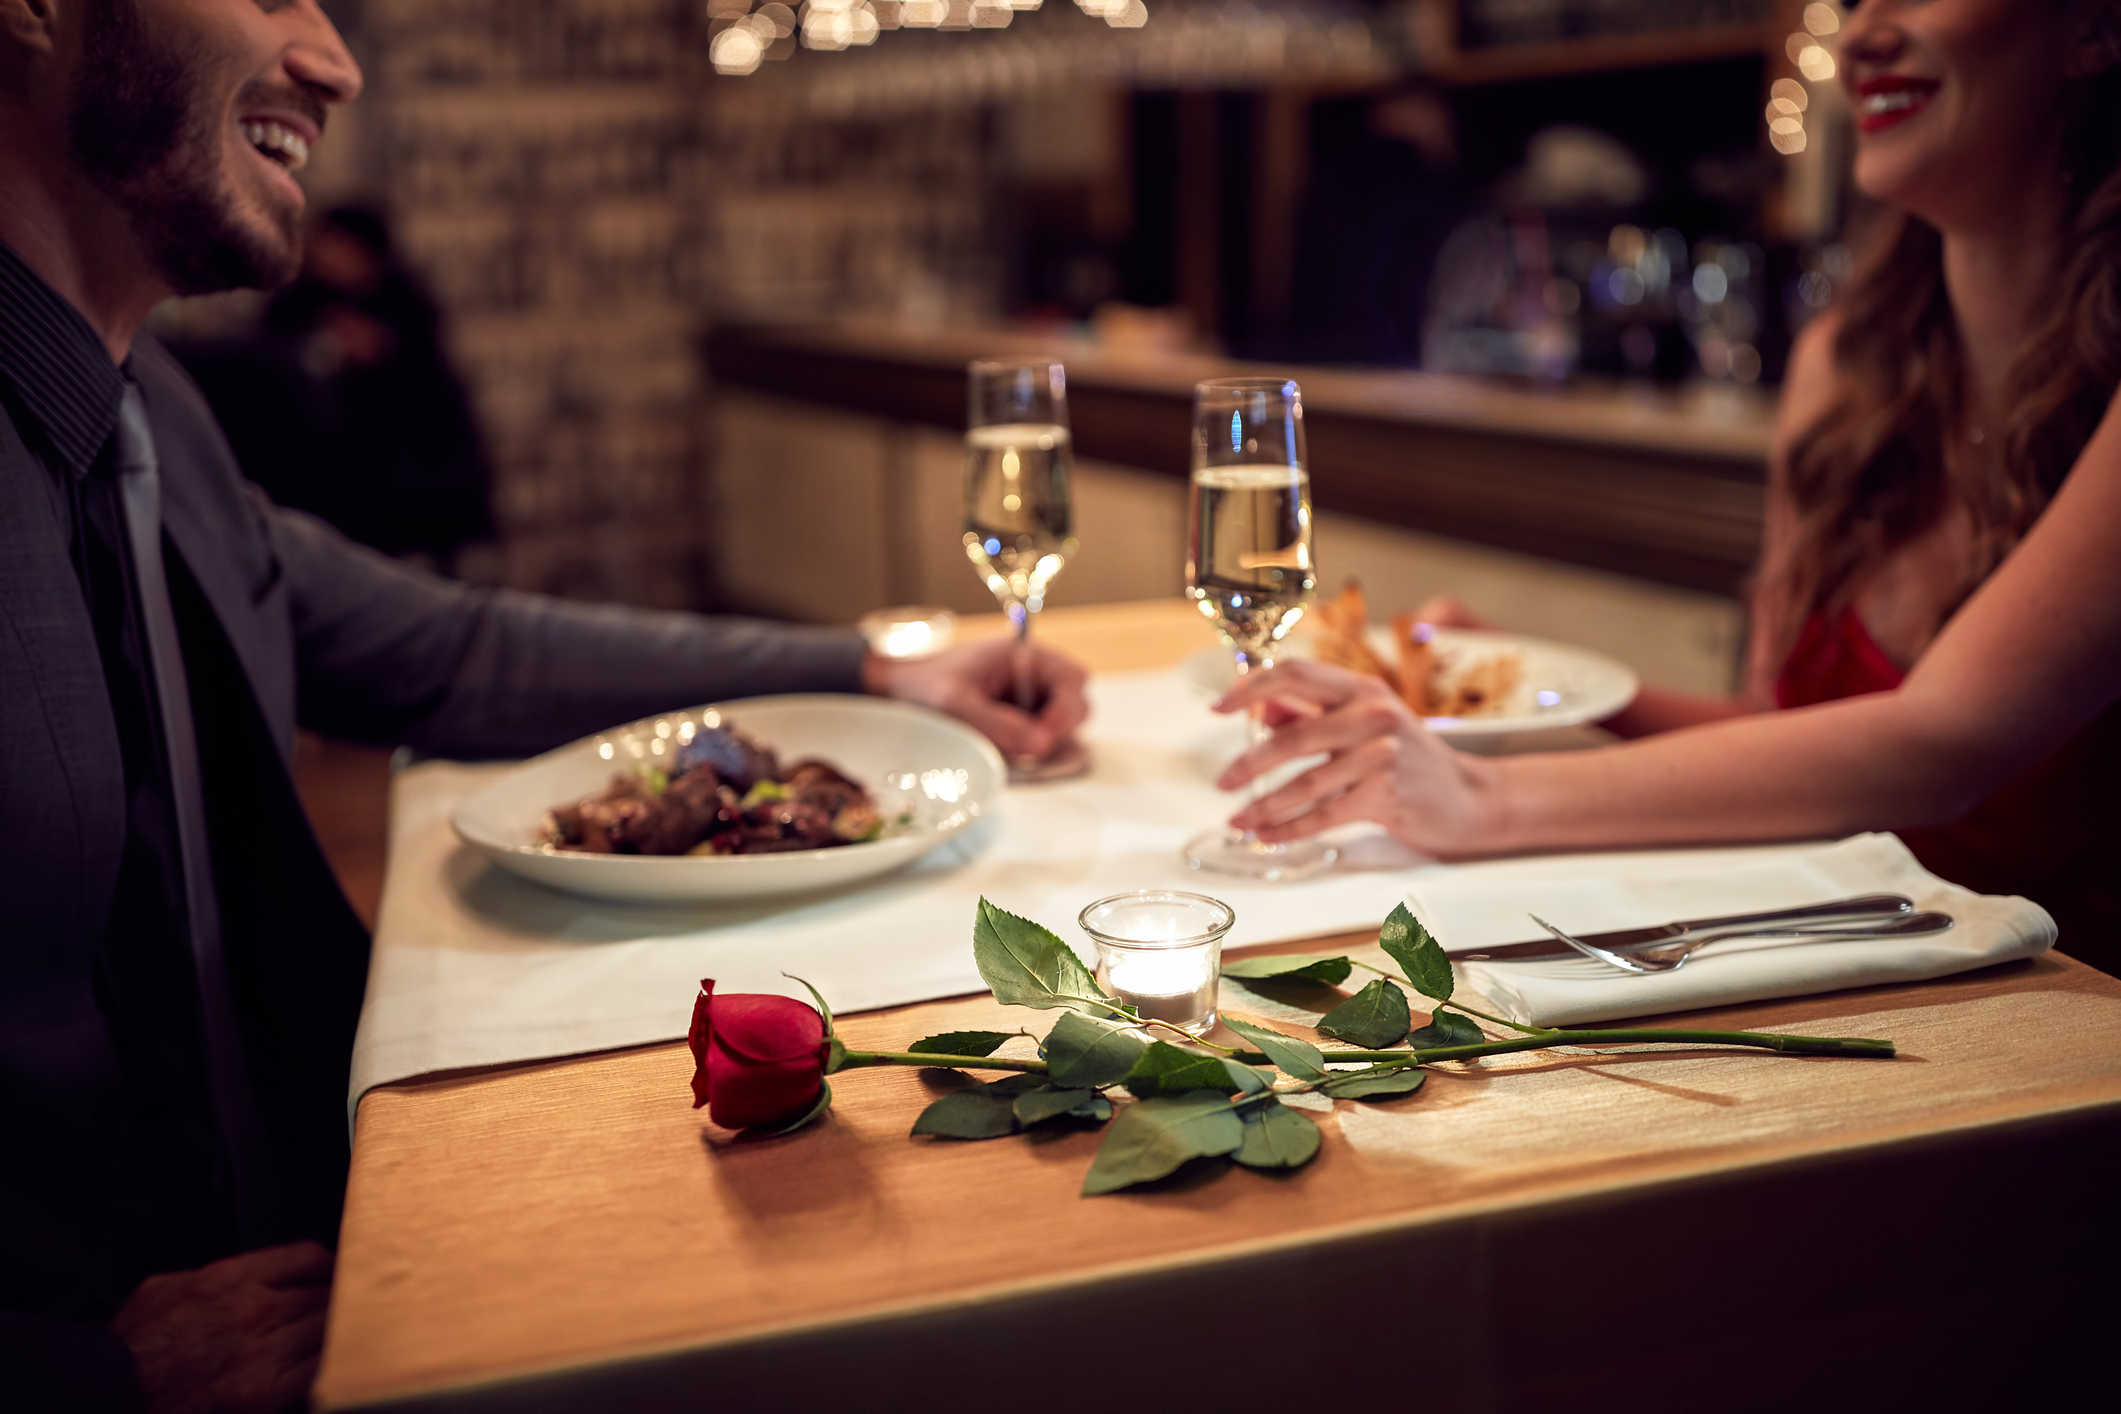 Prepare for Valentine's Day 2021 in Plano by Supporting Local Businesses at Windhaven Plaza